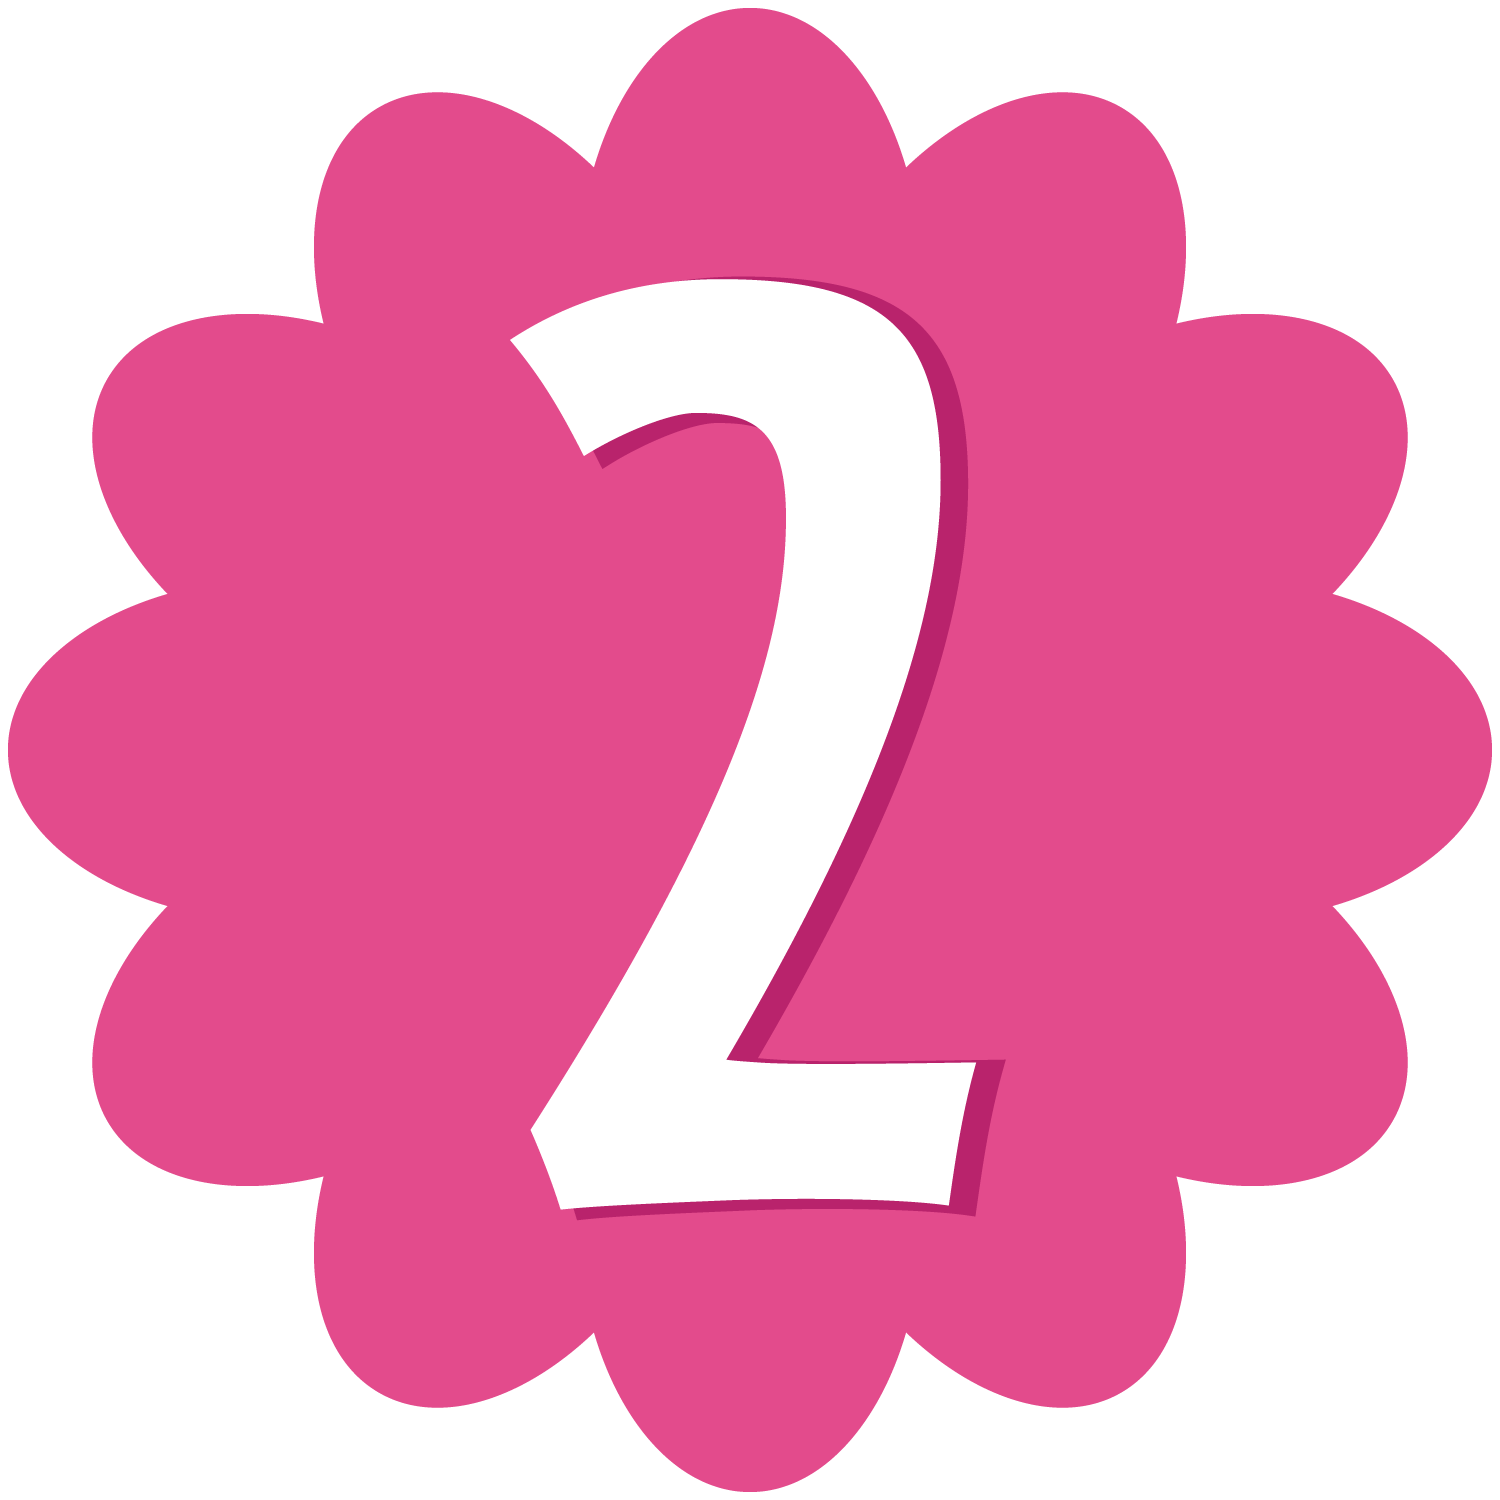 collection of clipart. Number 2 birthday png clip royalty free